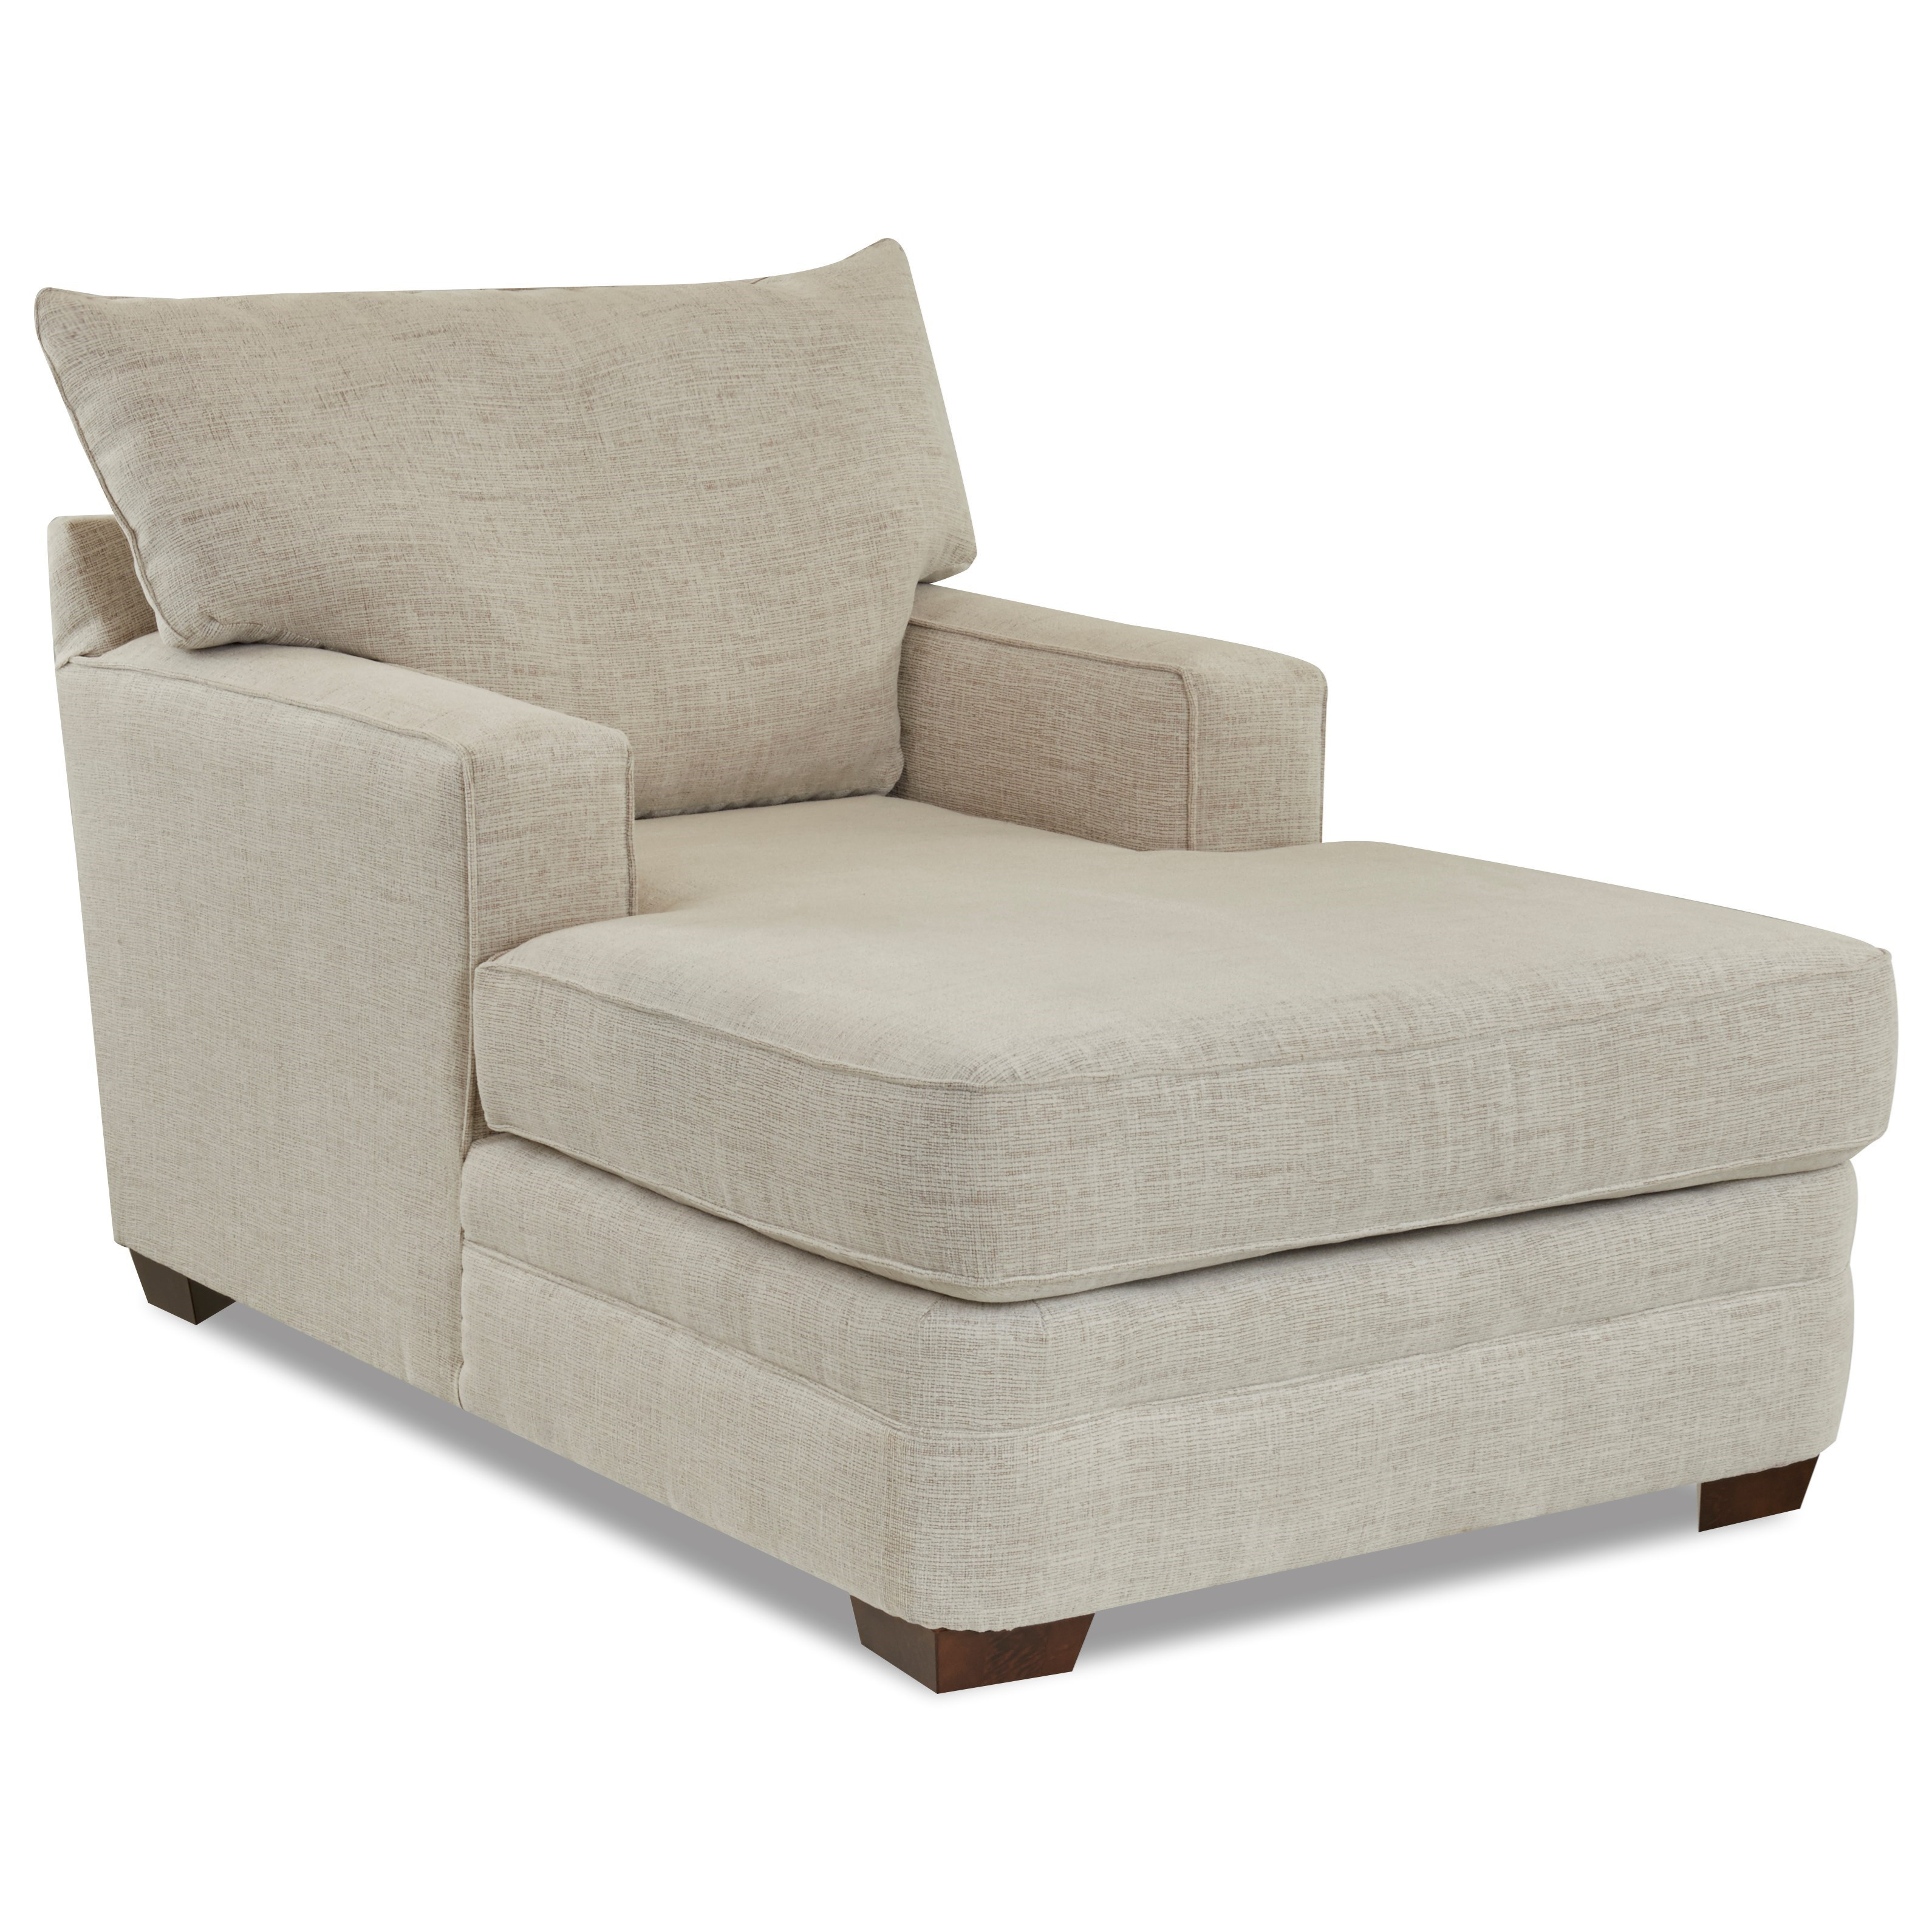 Casual Chaise Lounge with Square Track Arms